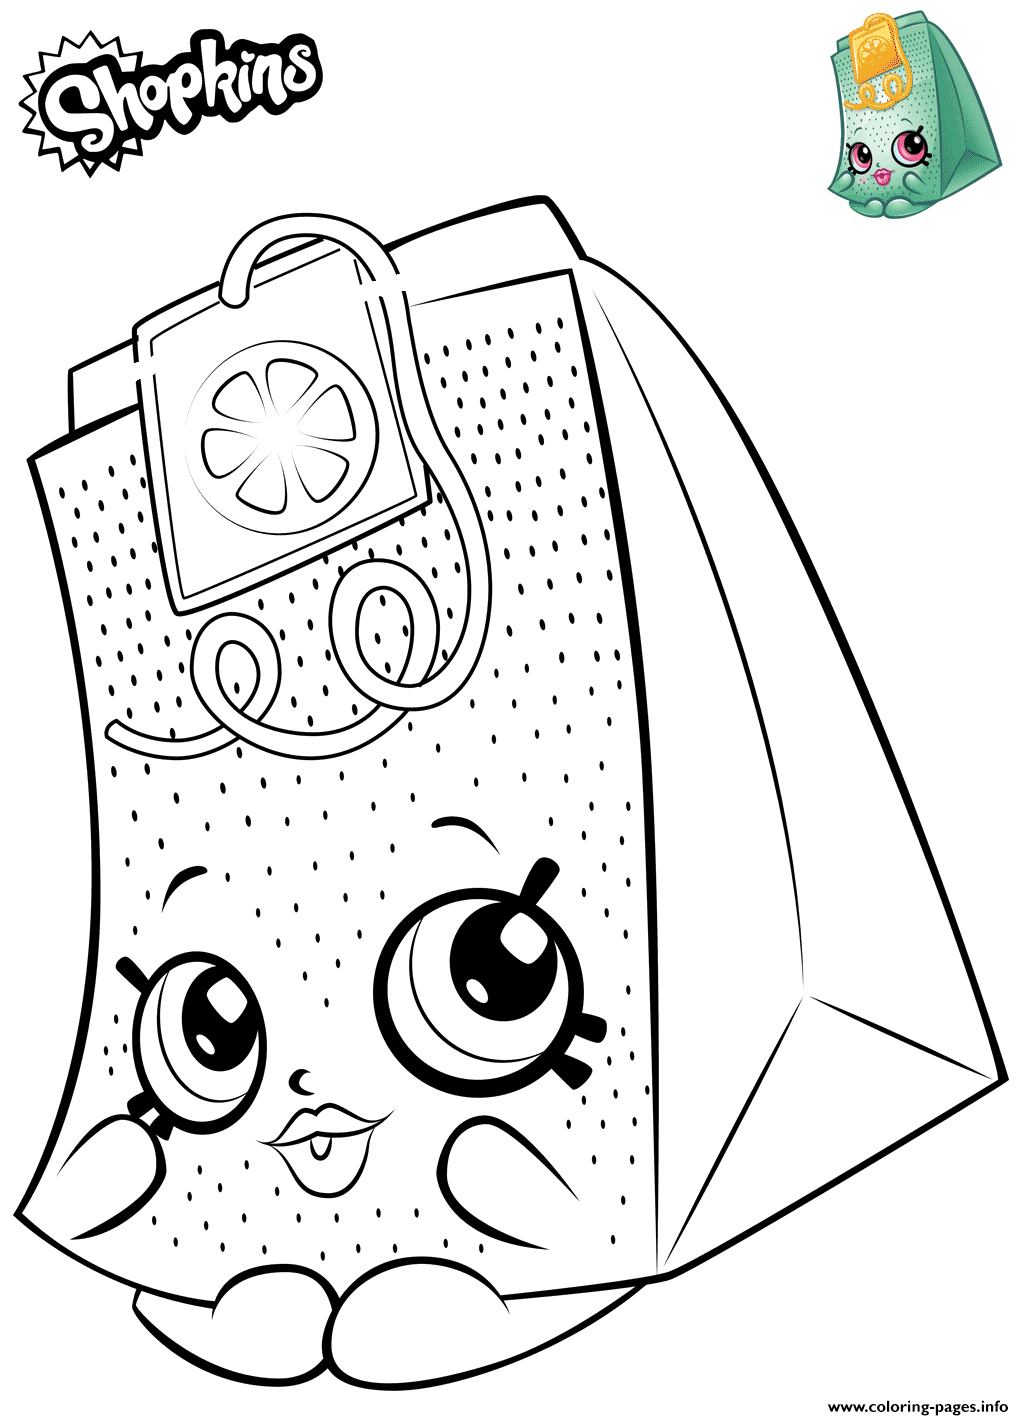 Teabag Shopkins coloring pages